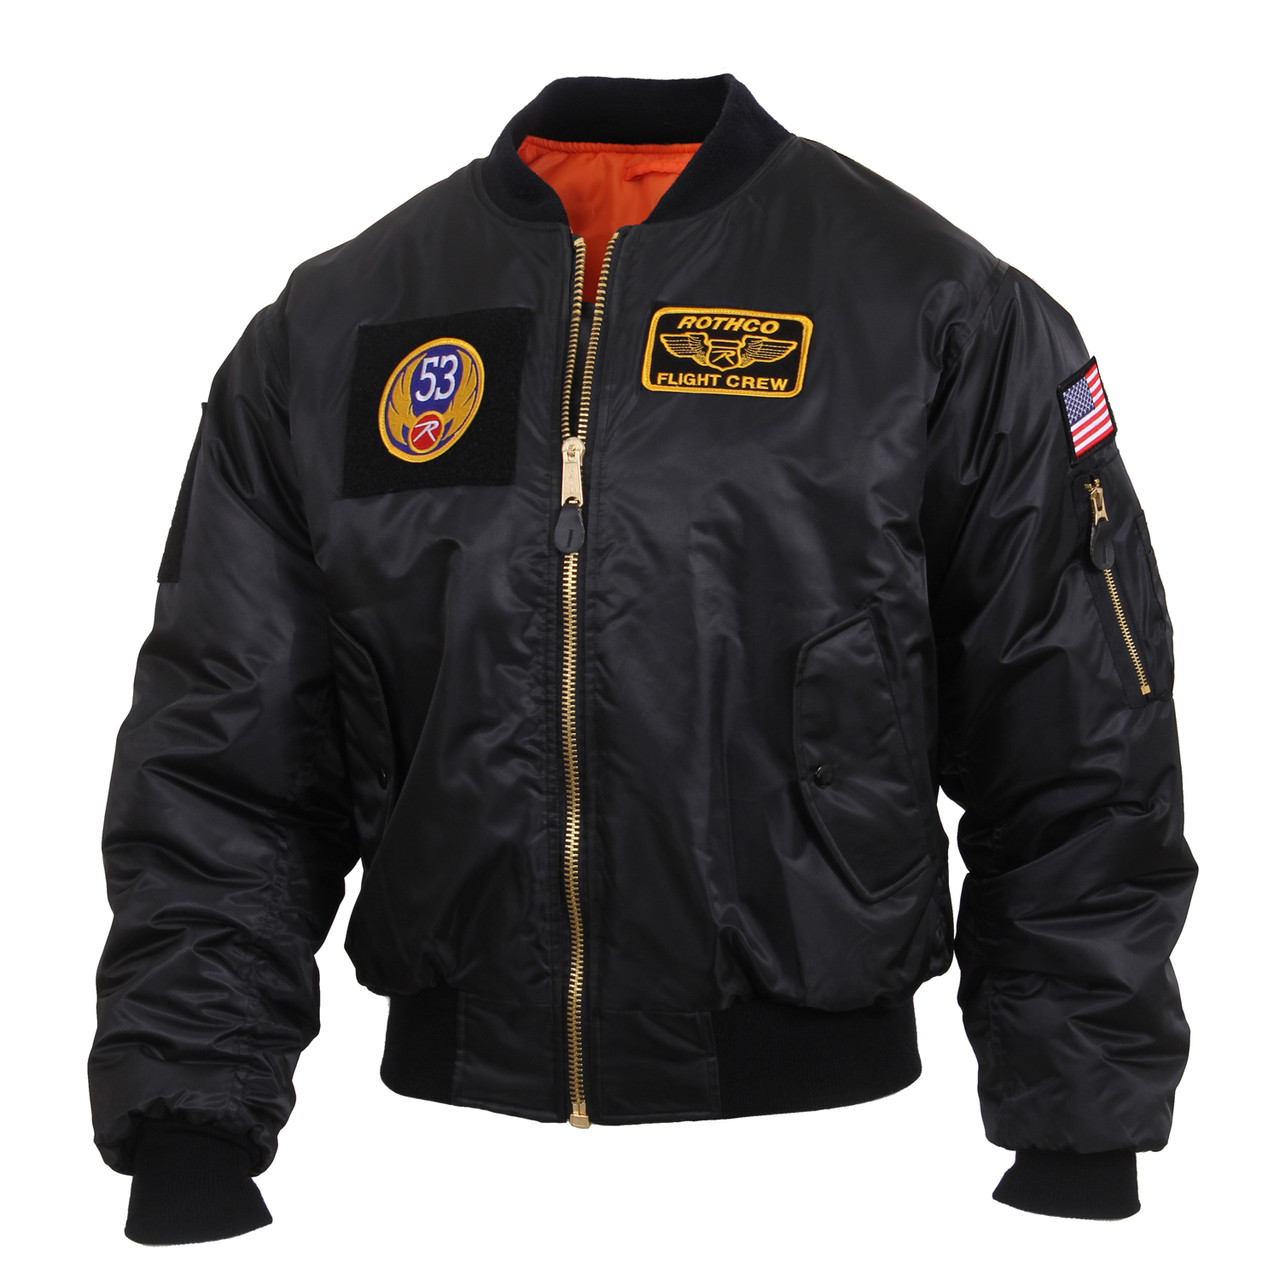 2883116bf Aviator Black MA-1 Flight Jacket w/ Patches